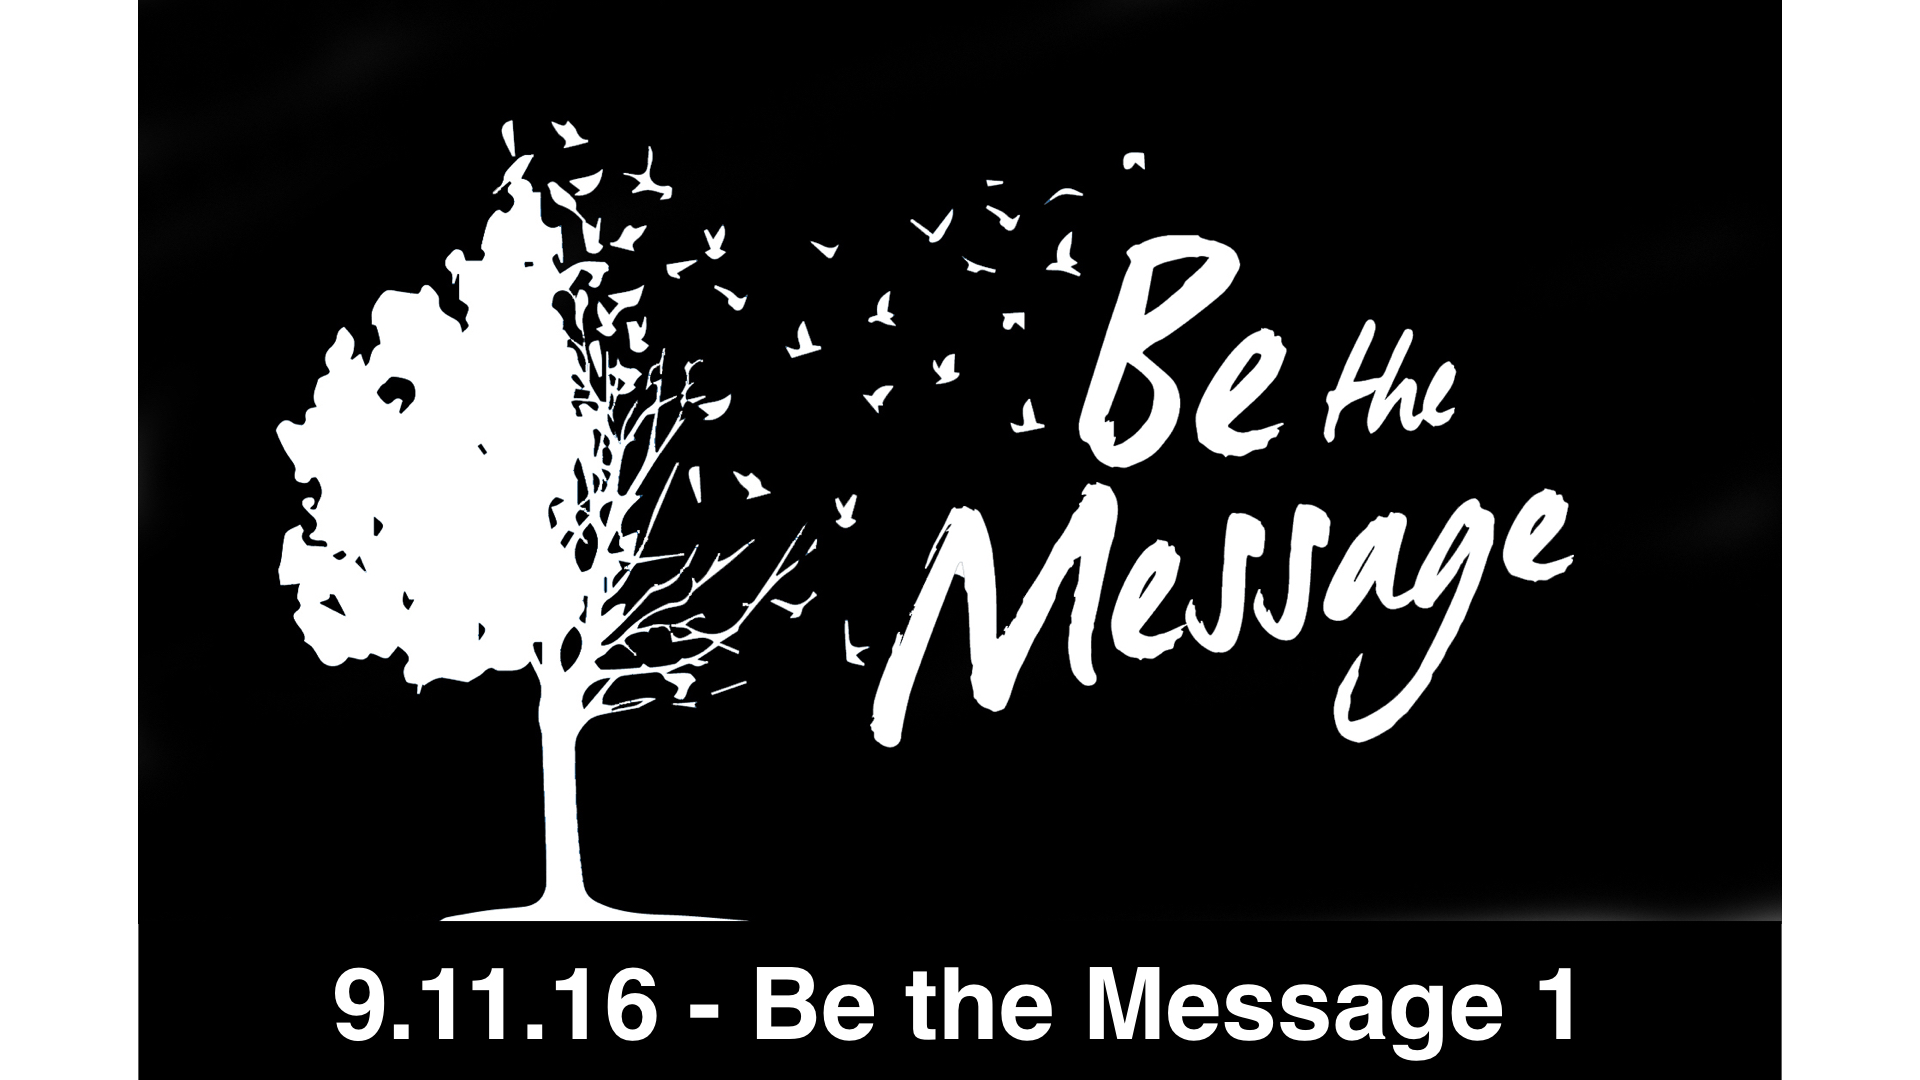 9.11.16 - Be the Message 1